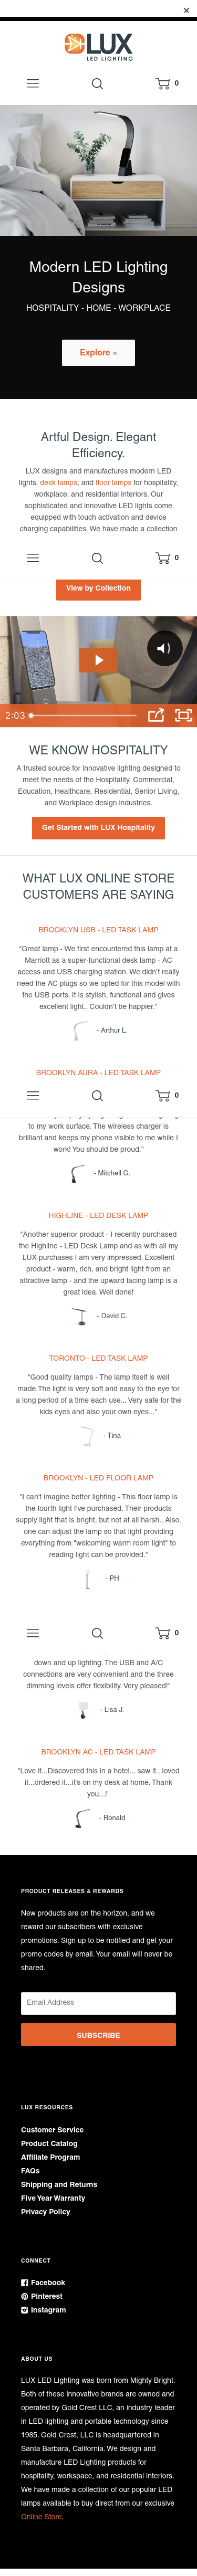 LUX LED Lighting Coupon